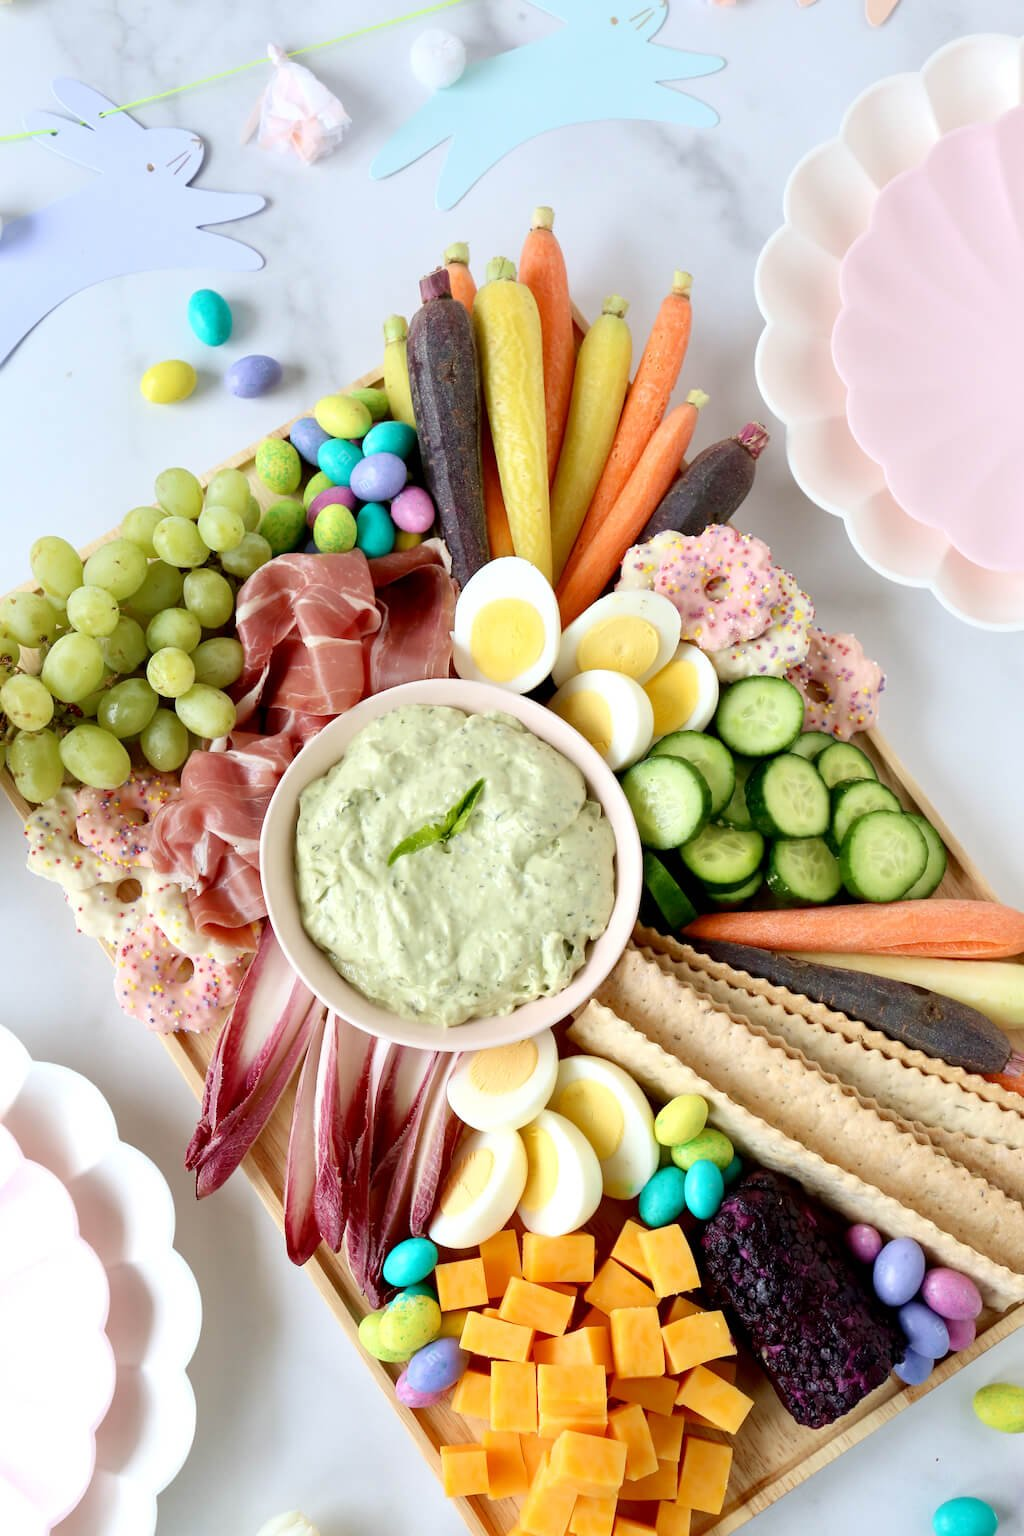 a platter of meats, cheeses, veggies and chocolate in the center of easter decorations